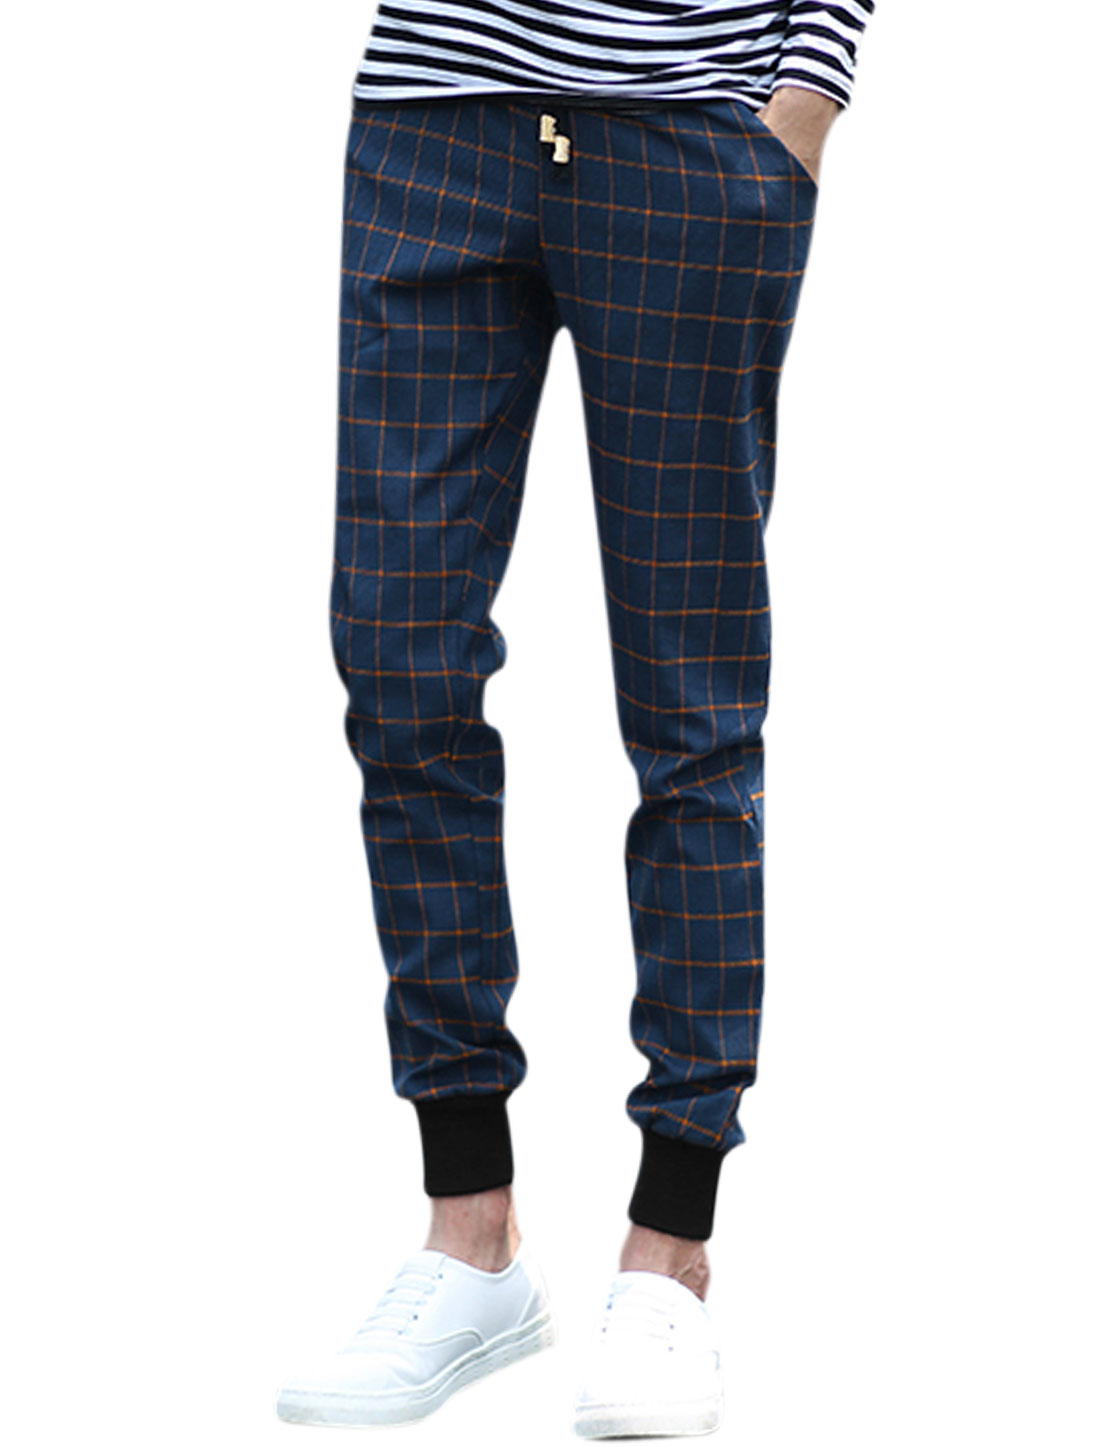 Men Natural Waist Hip Pockets Ribbed Cuffs Plaids Pants Blue W32